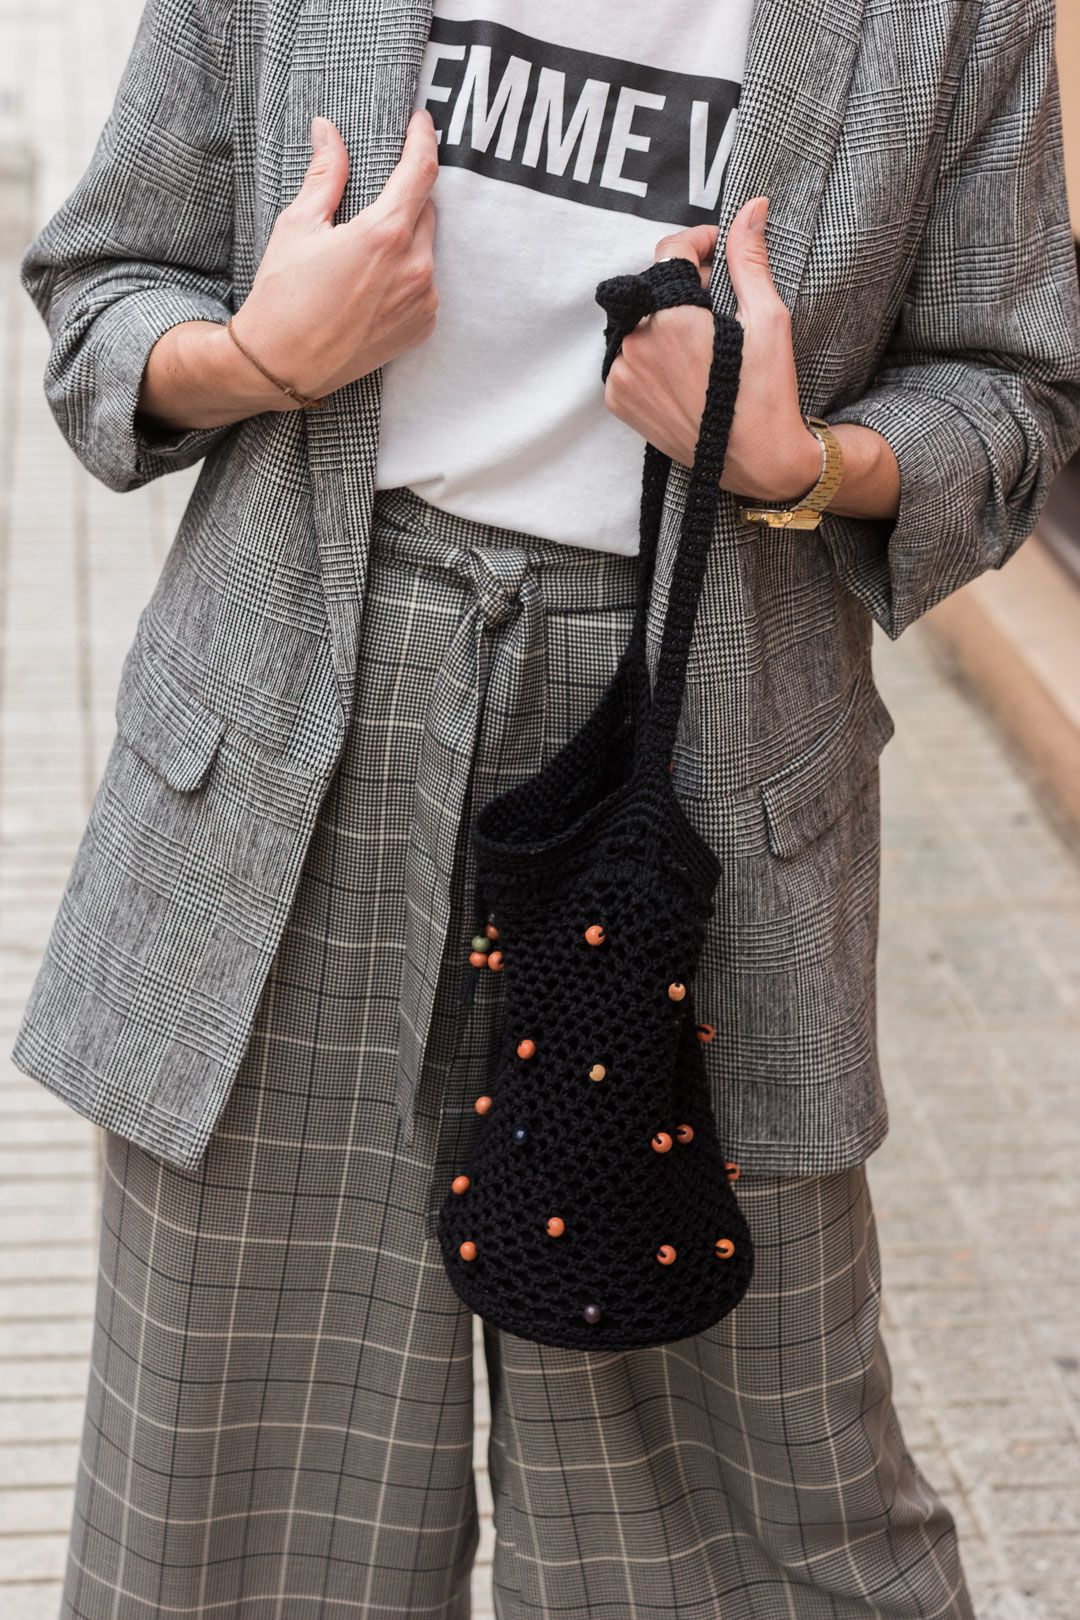 Not your average checked suit   The king print this autumn   Culottes for fall   #culottes   How to style a culotte for autumn   #transitionlook   #blazer   #checkedblazer   #Streetstyle   #minimalchic   #edgyfashion   She talks Glam   Saida Antolin   #crochetbag   #DYIbag   #falloutfit   #slogantee   #feministtee   Effortless chic   #OOTD   UK Blogger